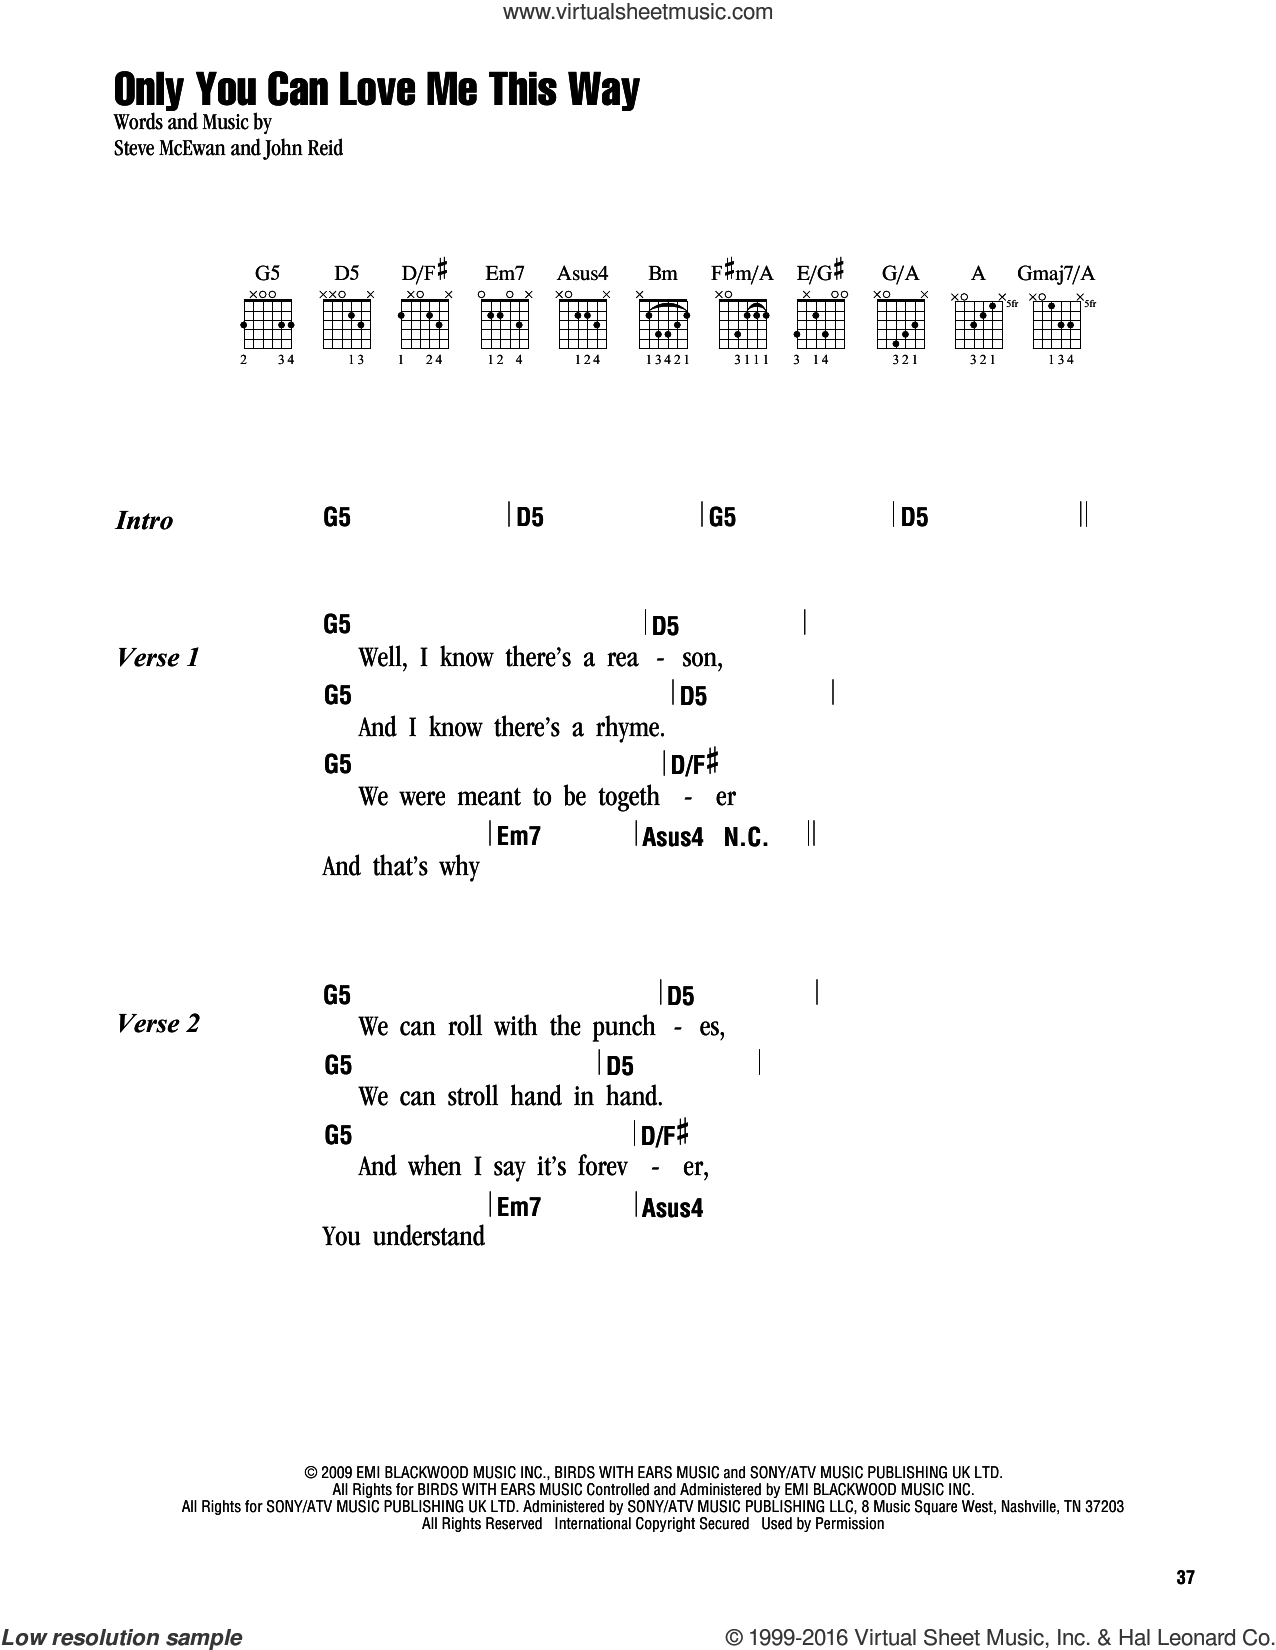 Only you guitar chords image collections guitar chords examples urban only you can love me this way sheet music for guitar chords only you can hexwebz Images